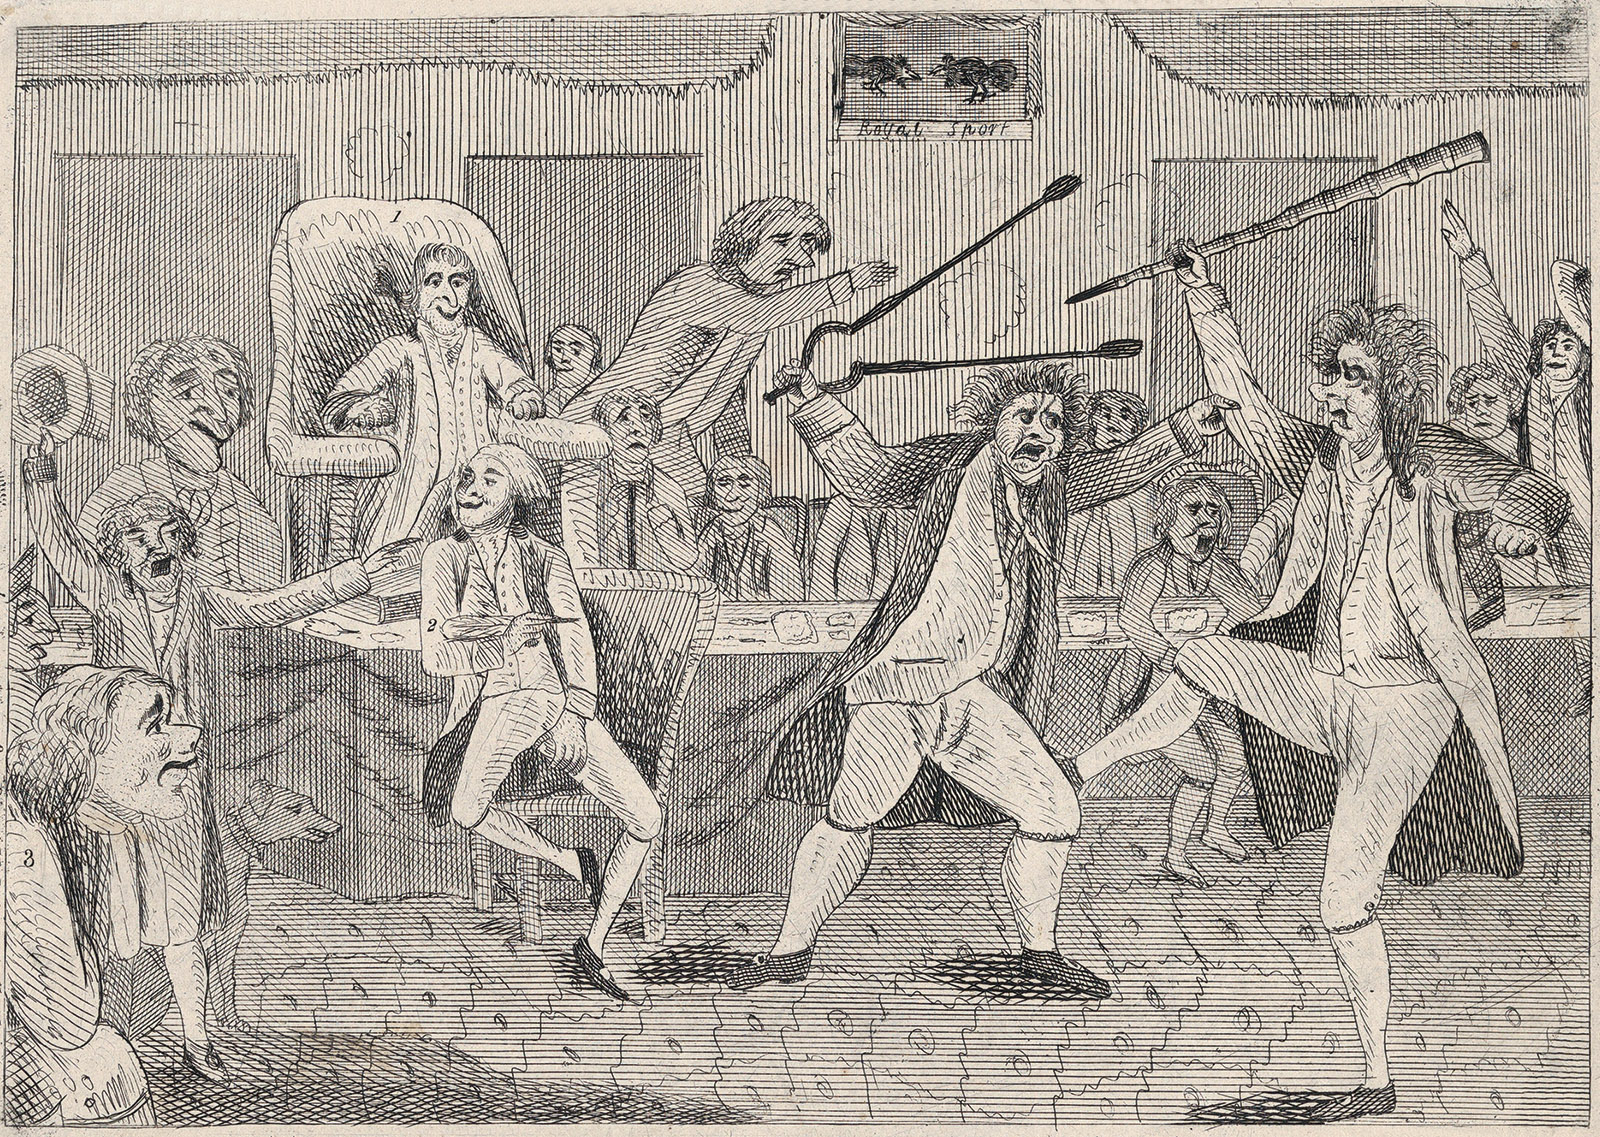 An anonymous cartoon depicting Republican and Federalist congressmen fighting on the floor of the House, 1798